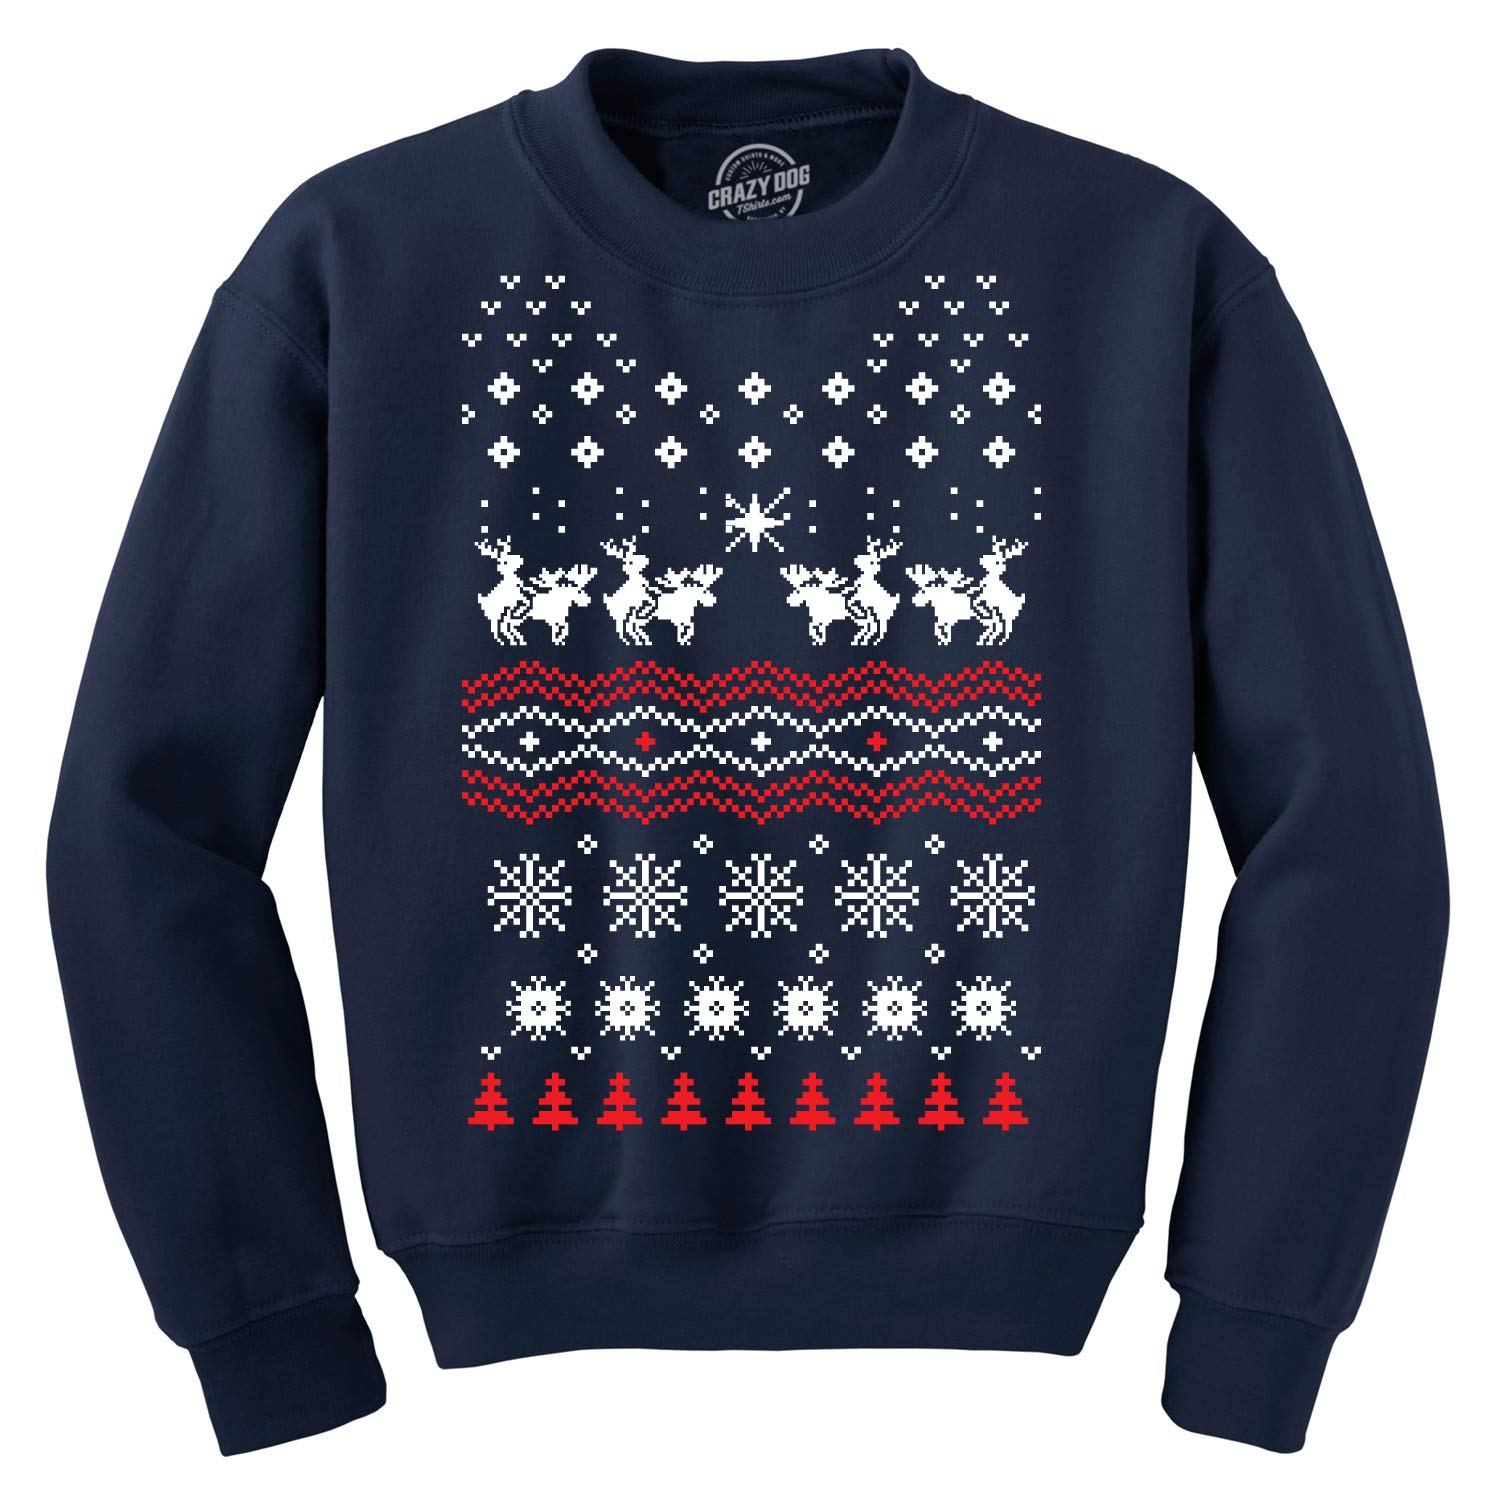 Crazy Dog T-Shirts Humping Moose Funny Ugly Christmas Holiday Xmas Sweatshirt Offensive Party Tee